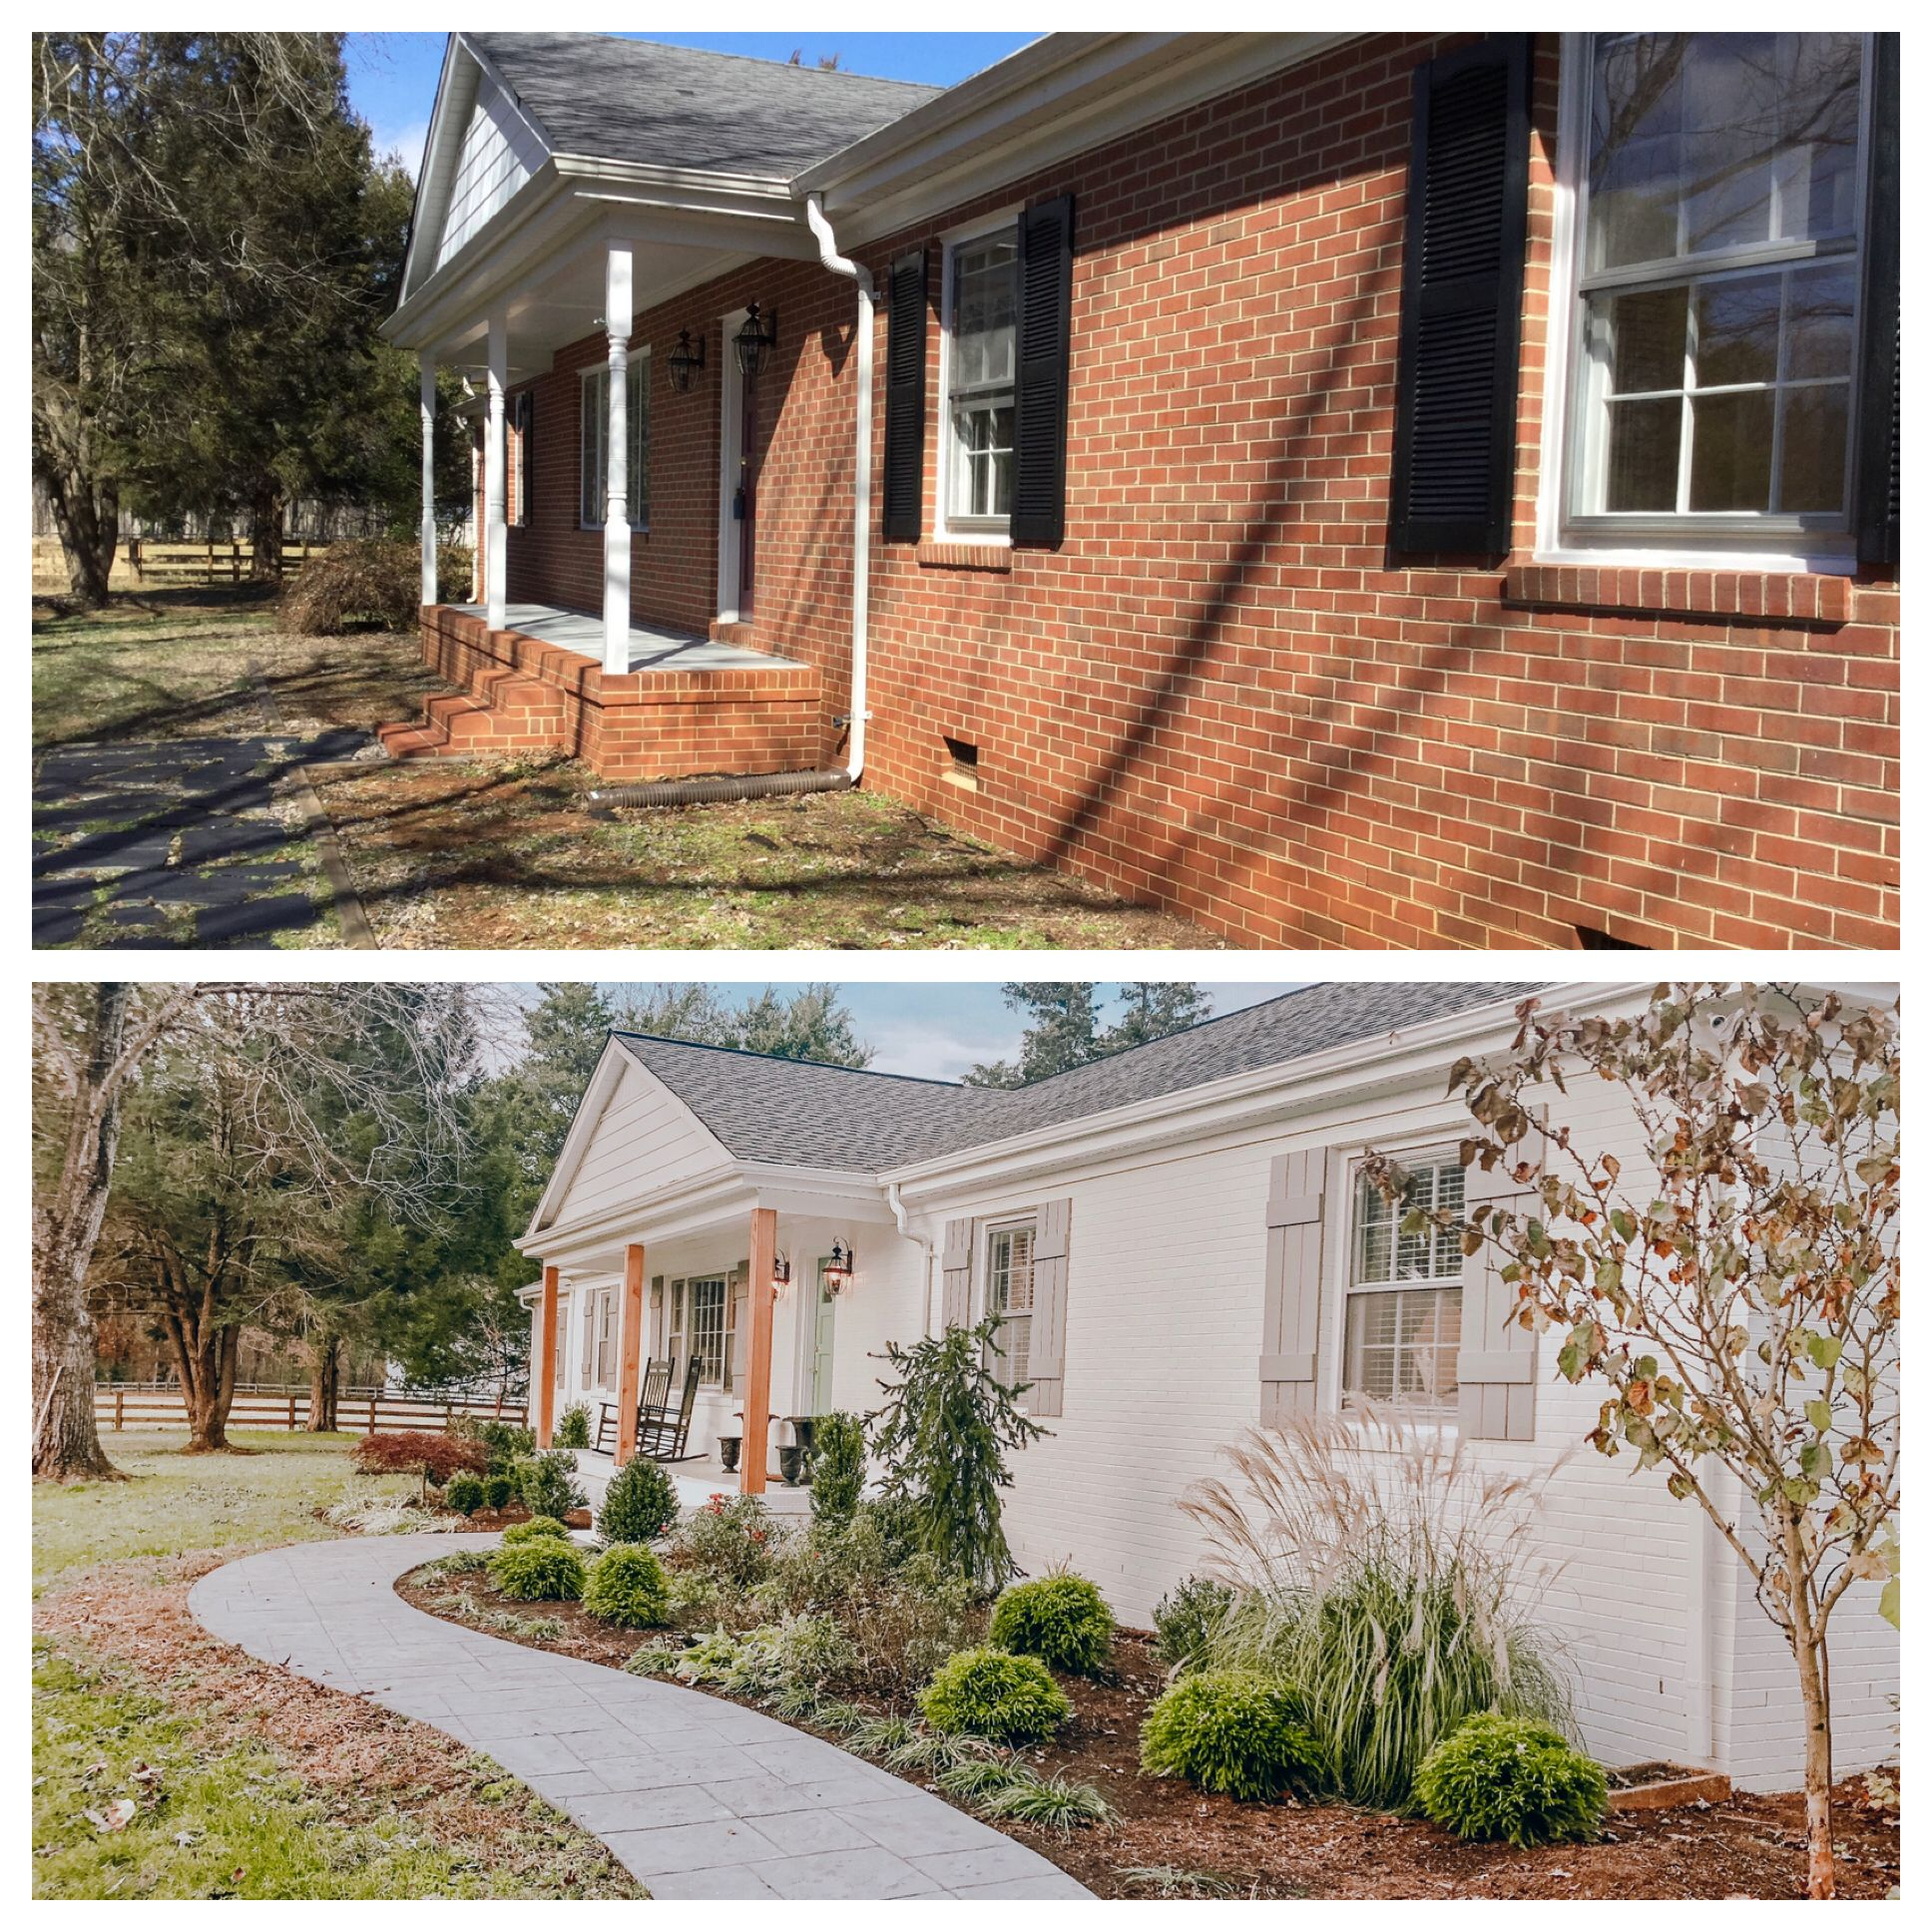 Before And After Painted The Brick White Built New Shutters And Added Landscaping And Roof Sl Brick Exterior House Brick Ranch Houses Home Exterior Makeover